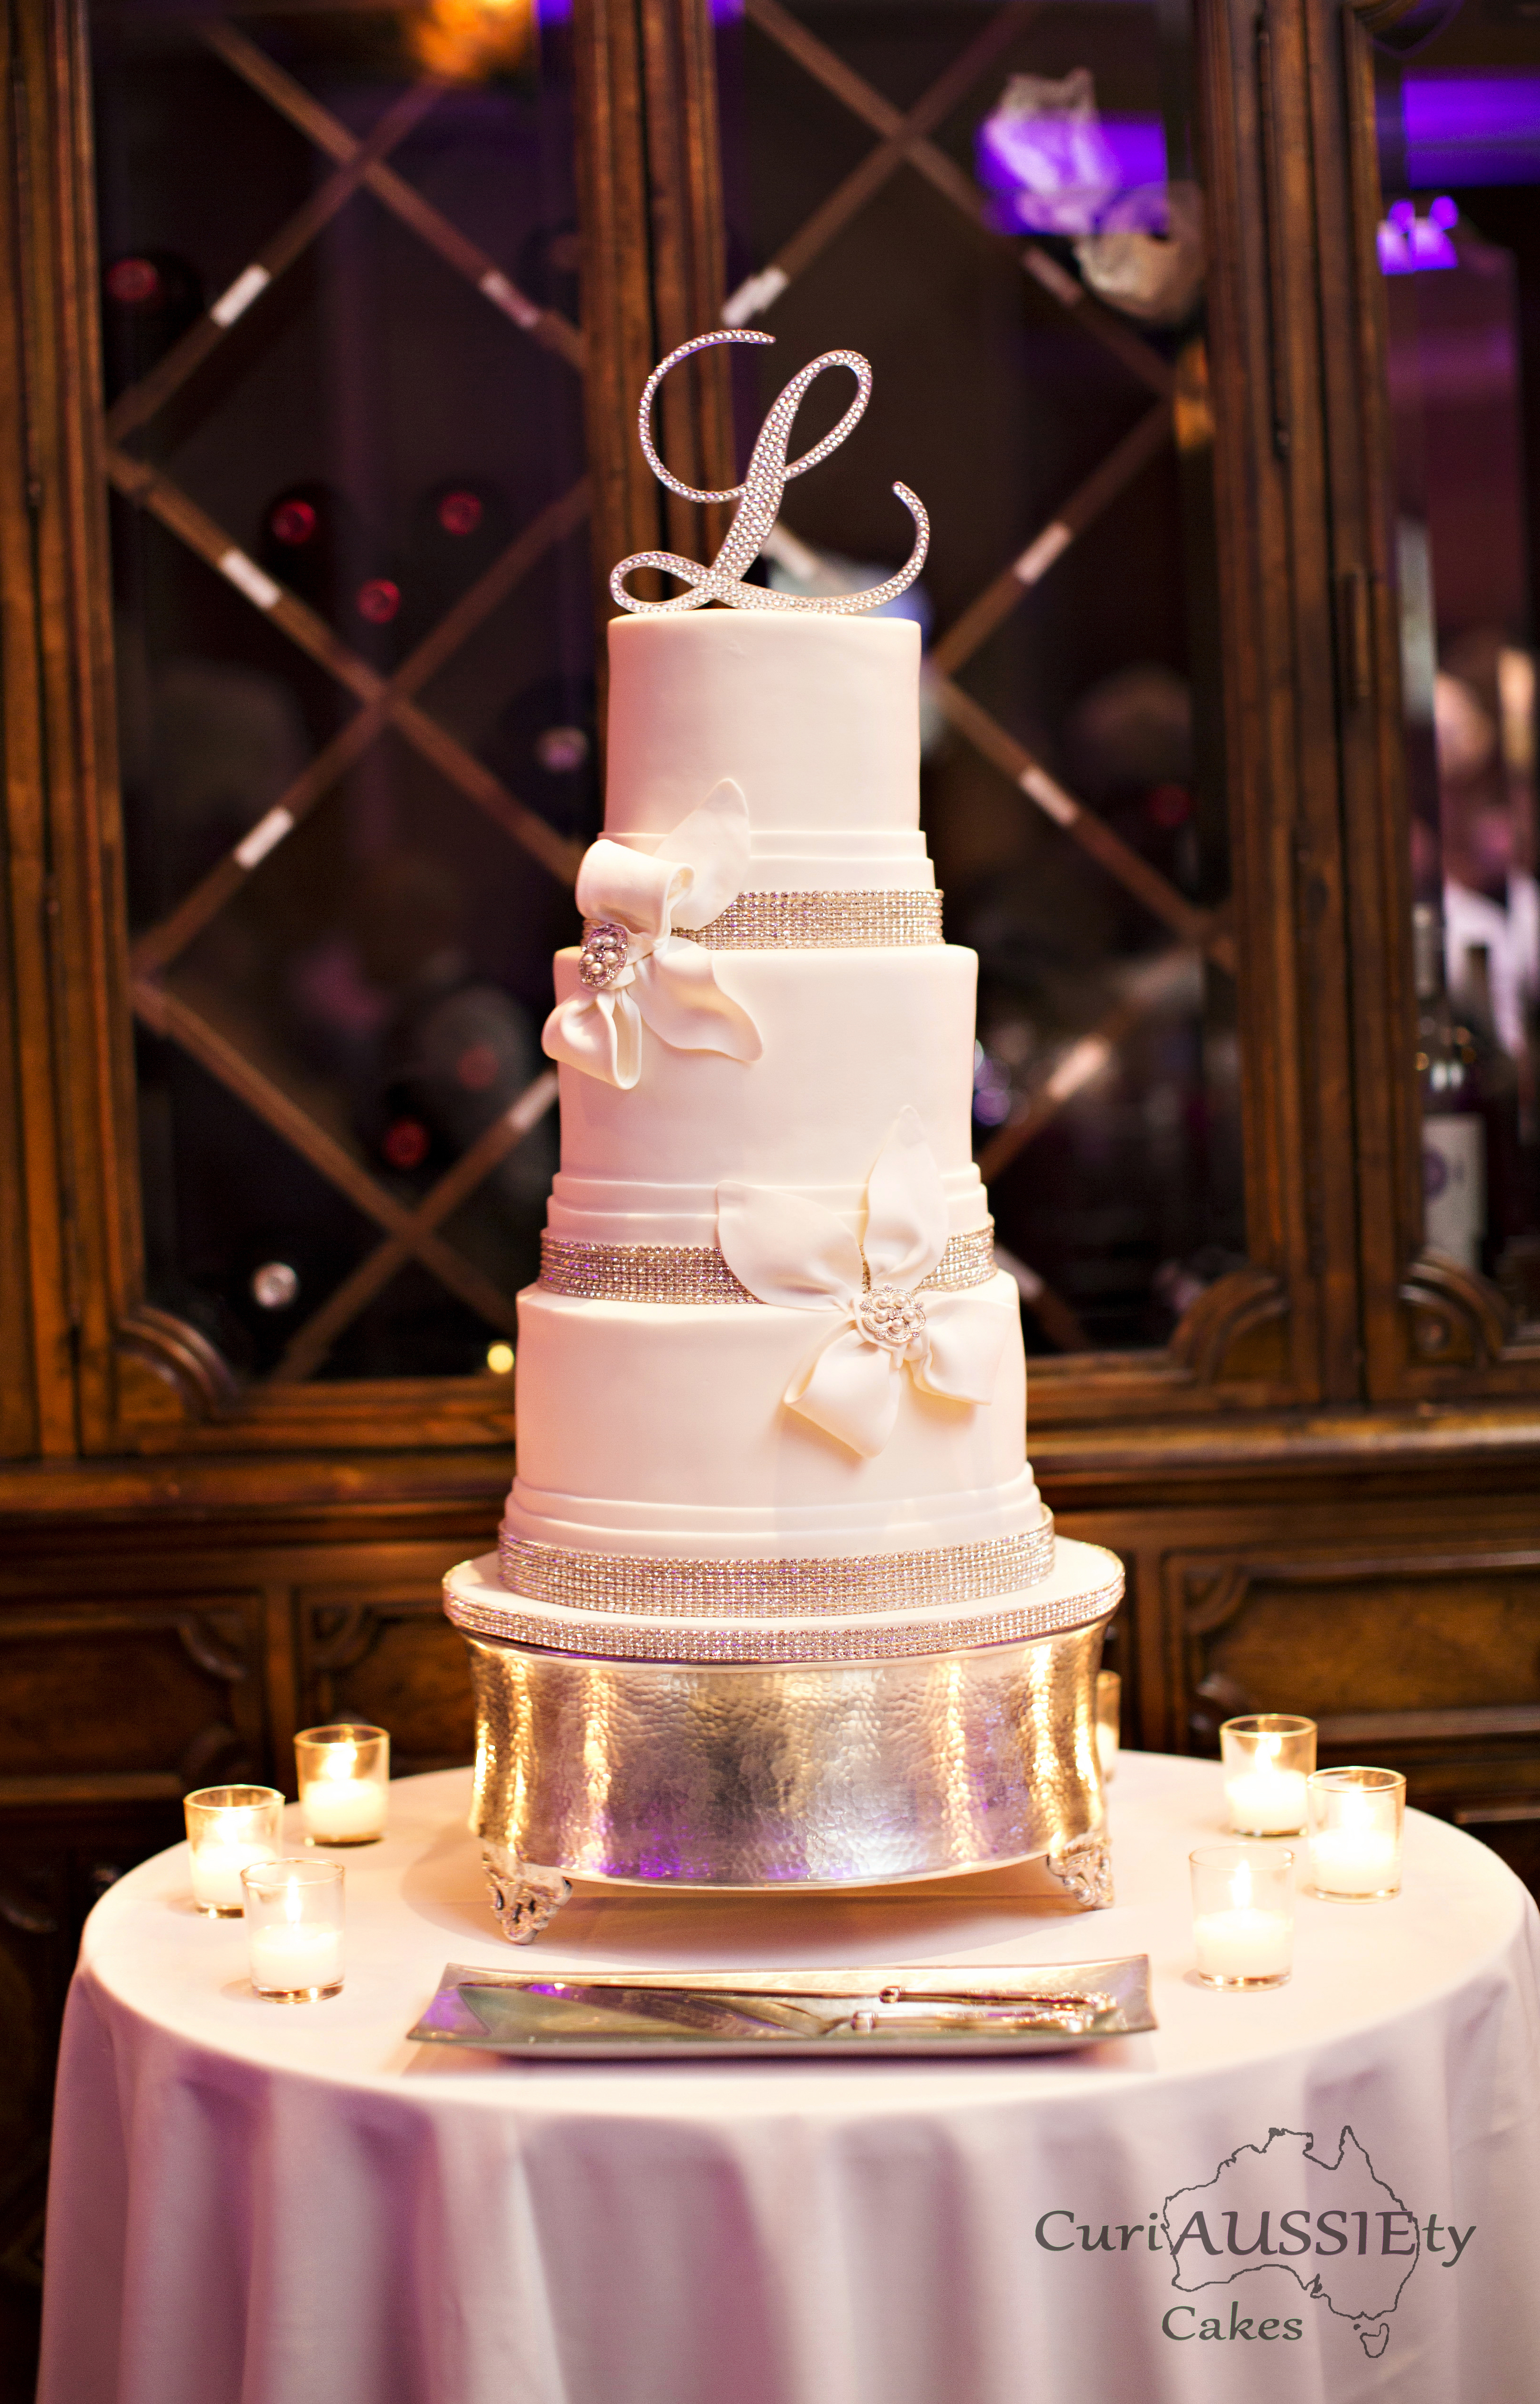 Ivory with bows wedding cake